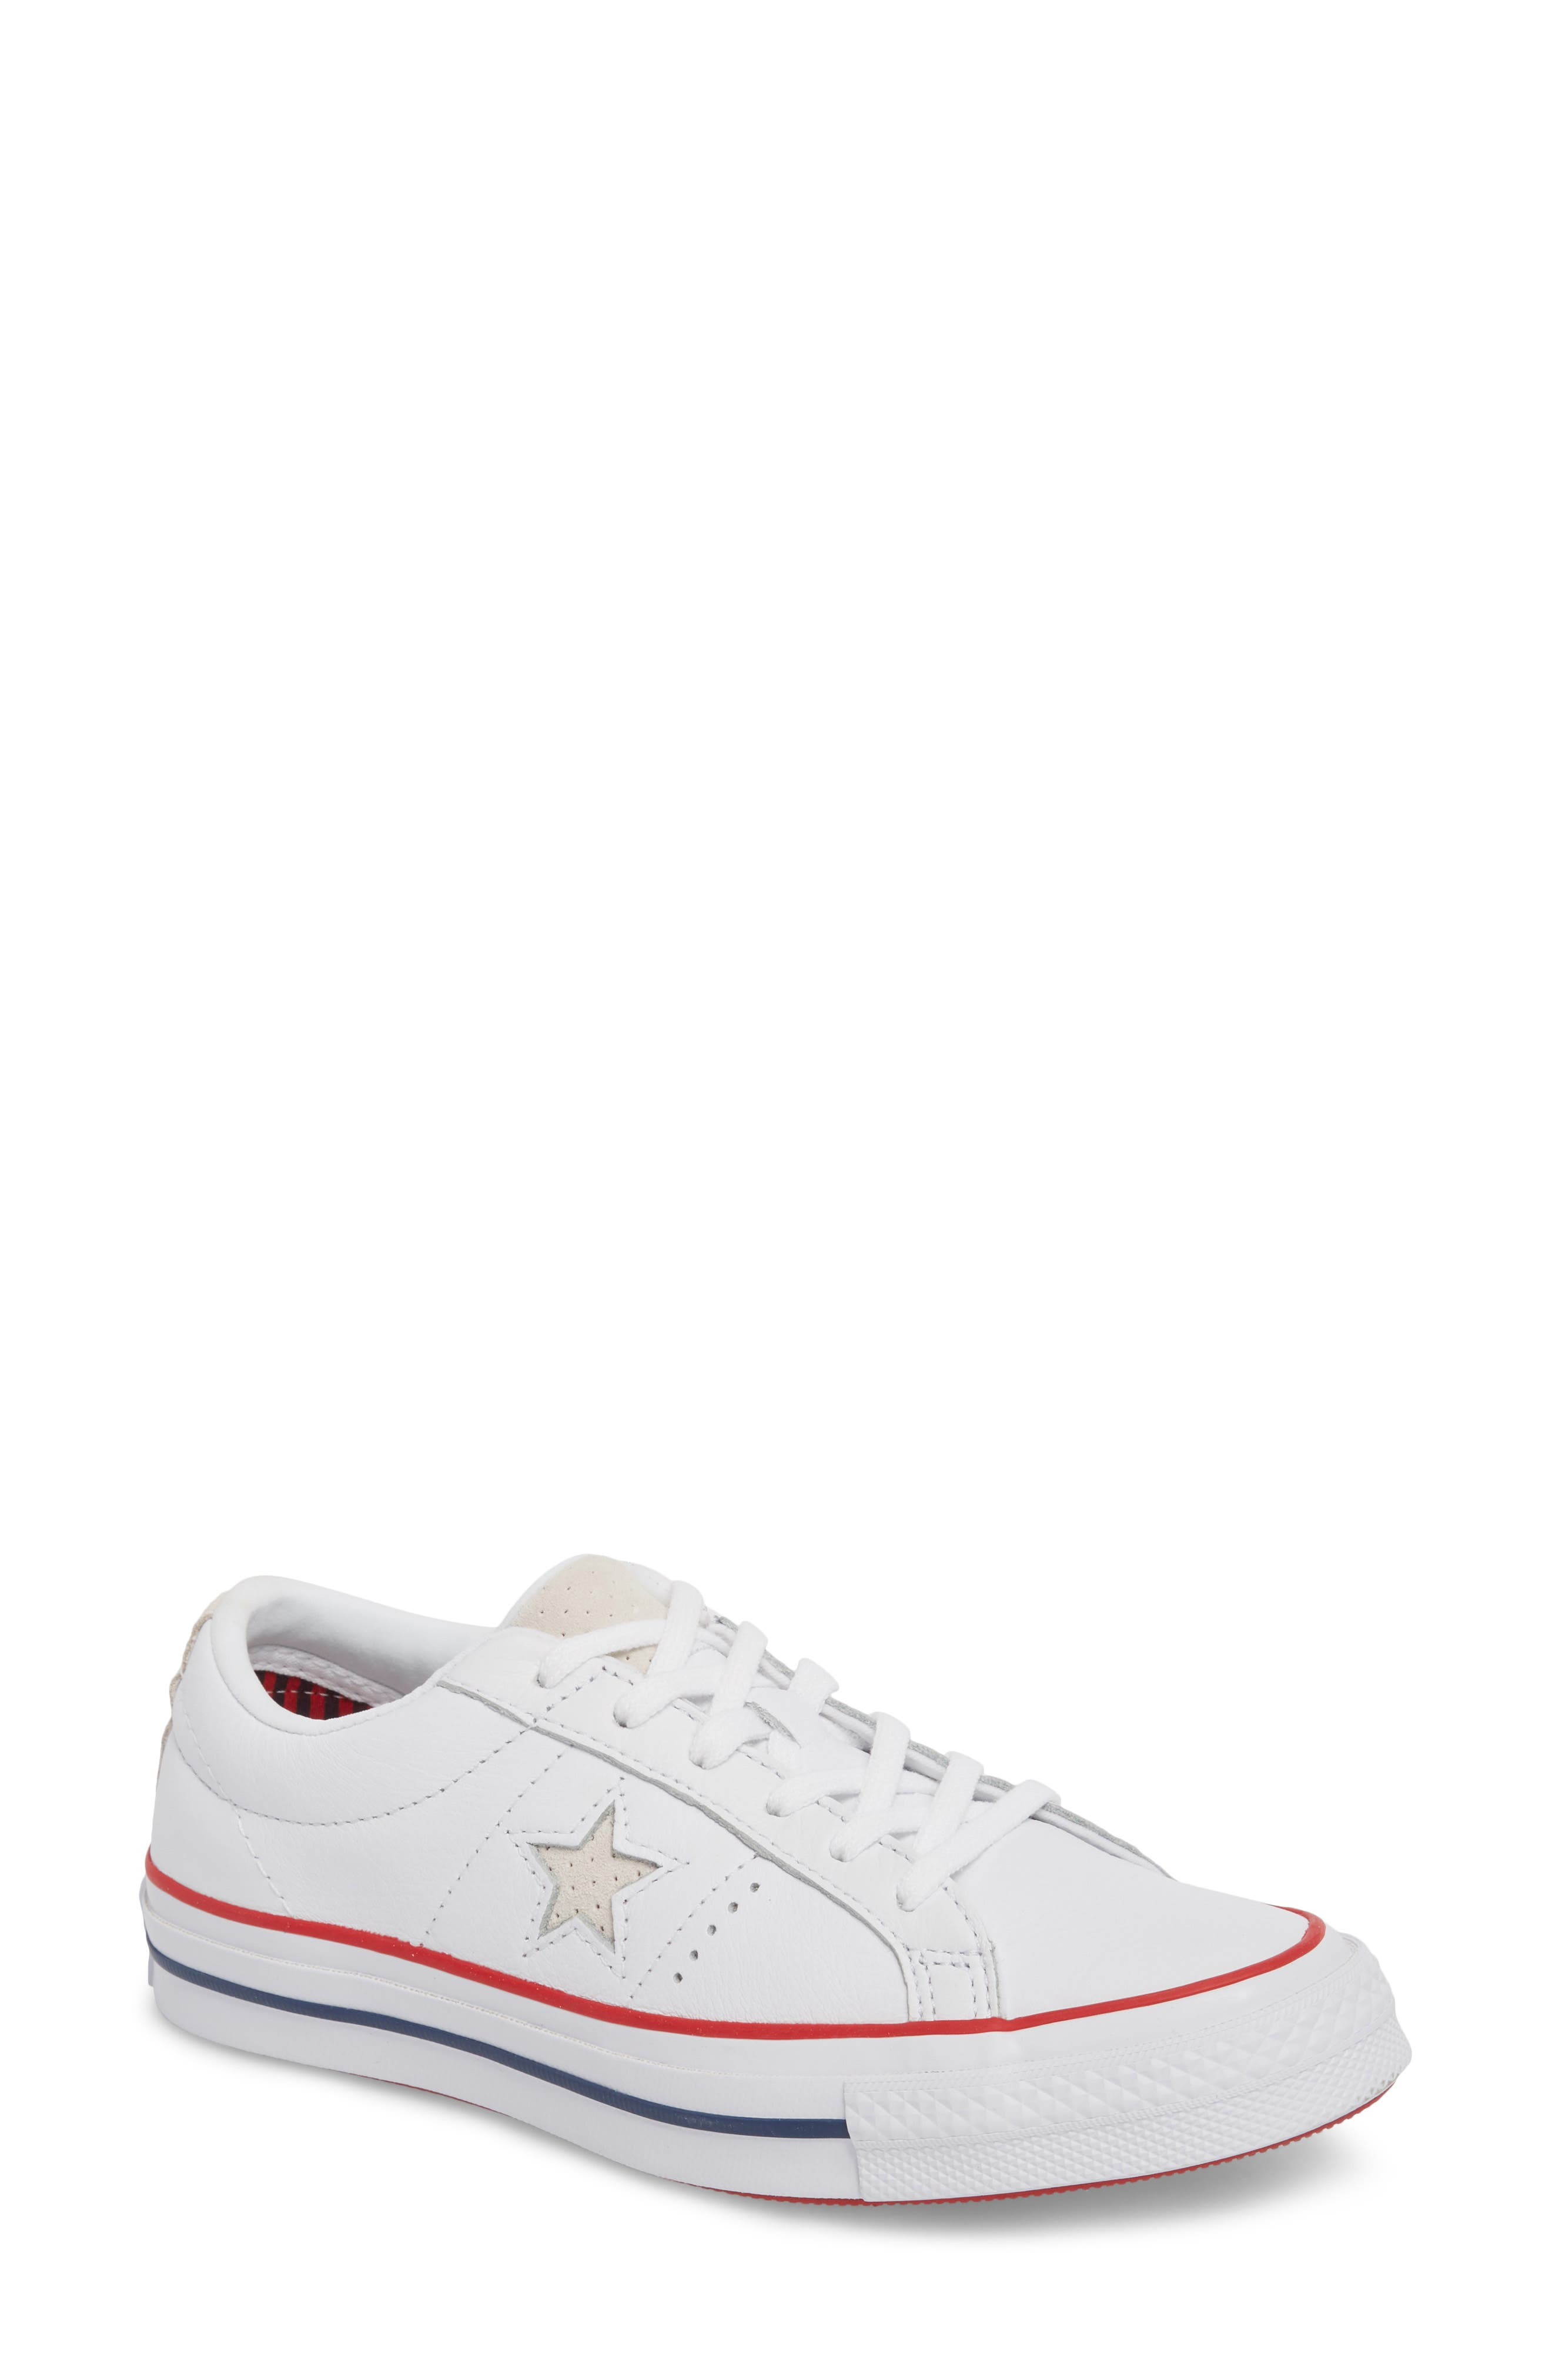 One Star Sneaker,                         Main,                         color, White/ Gym Red